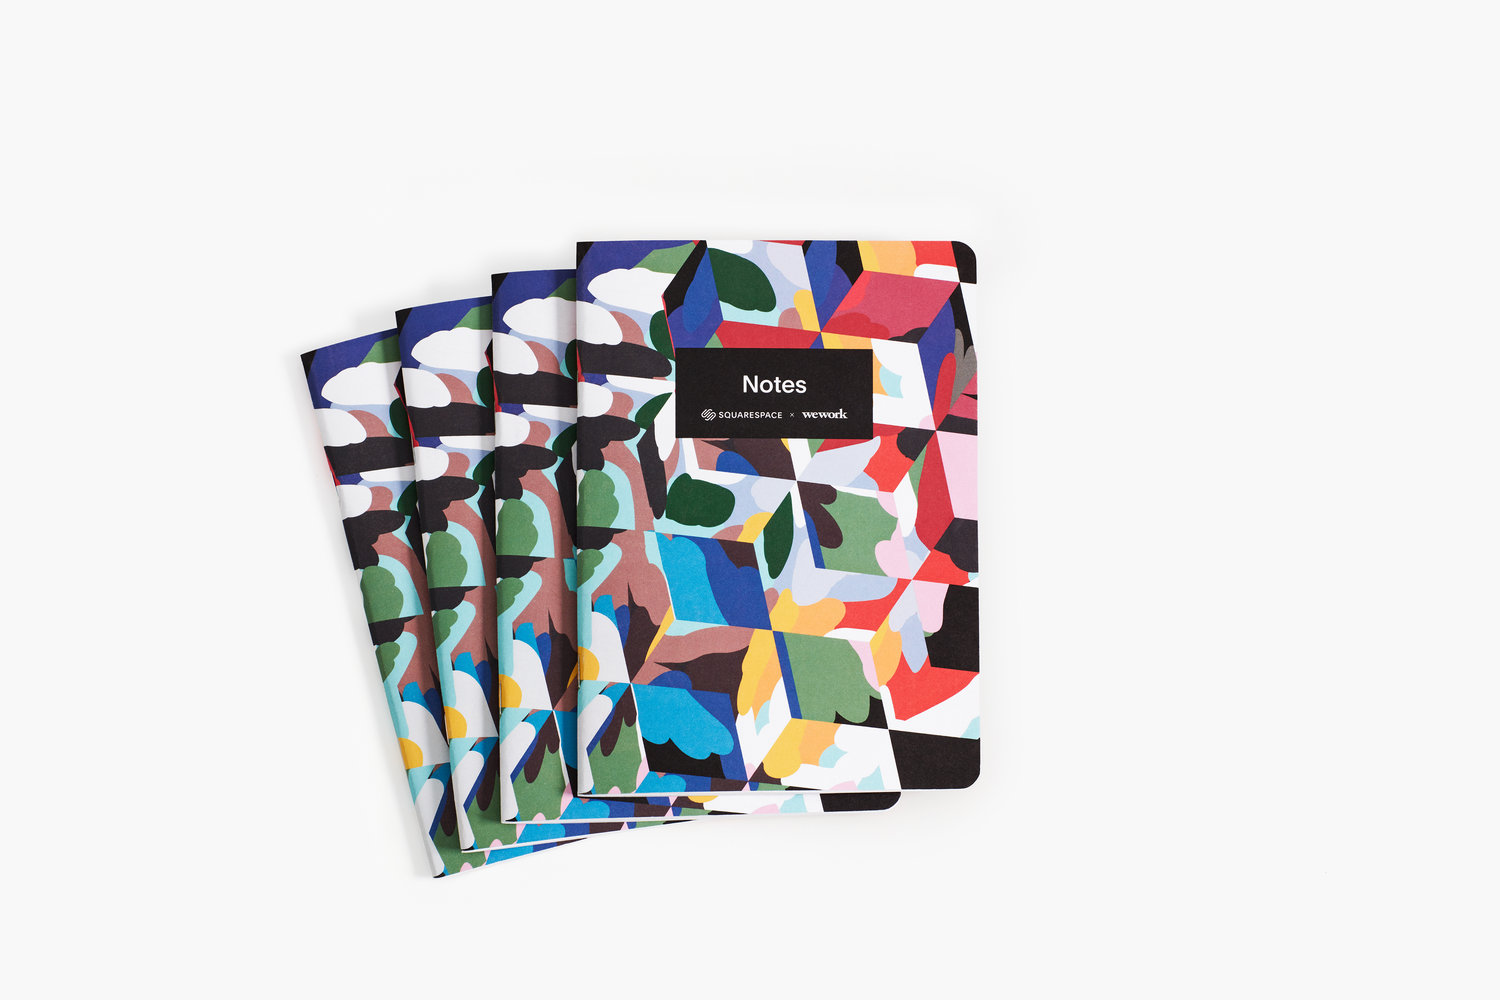 WeWork_Notebooks_photo_multiple.jpg